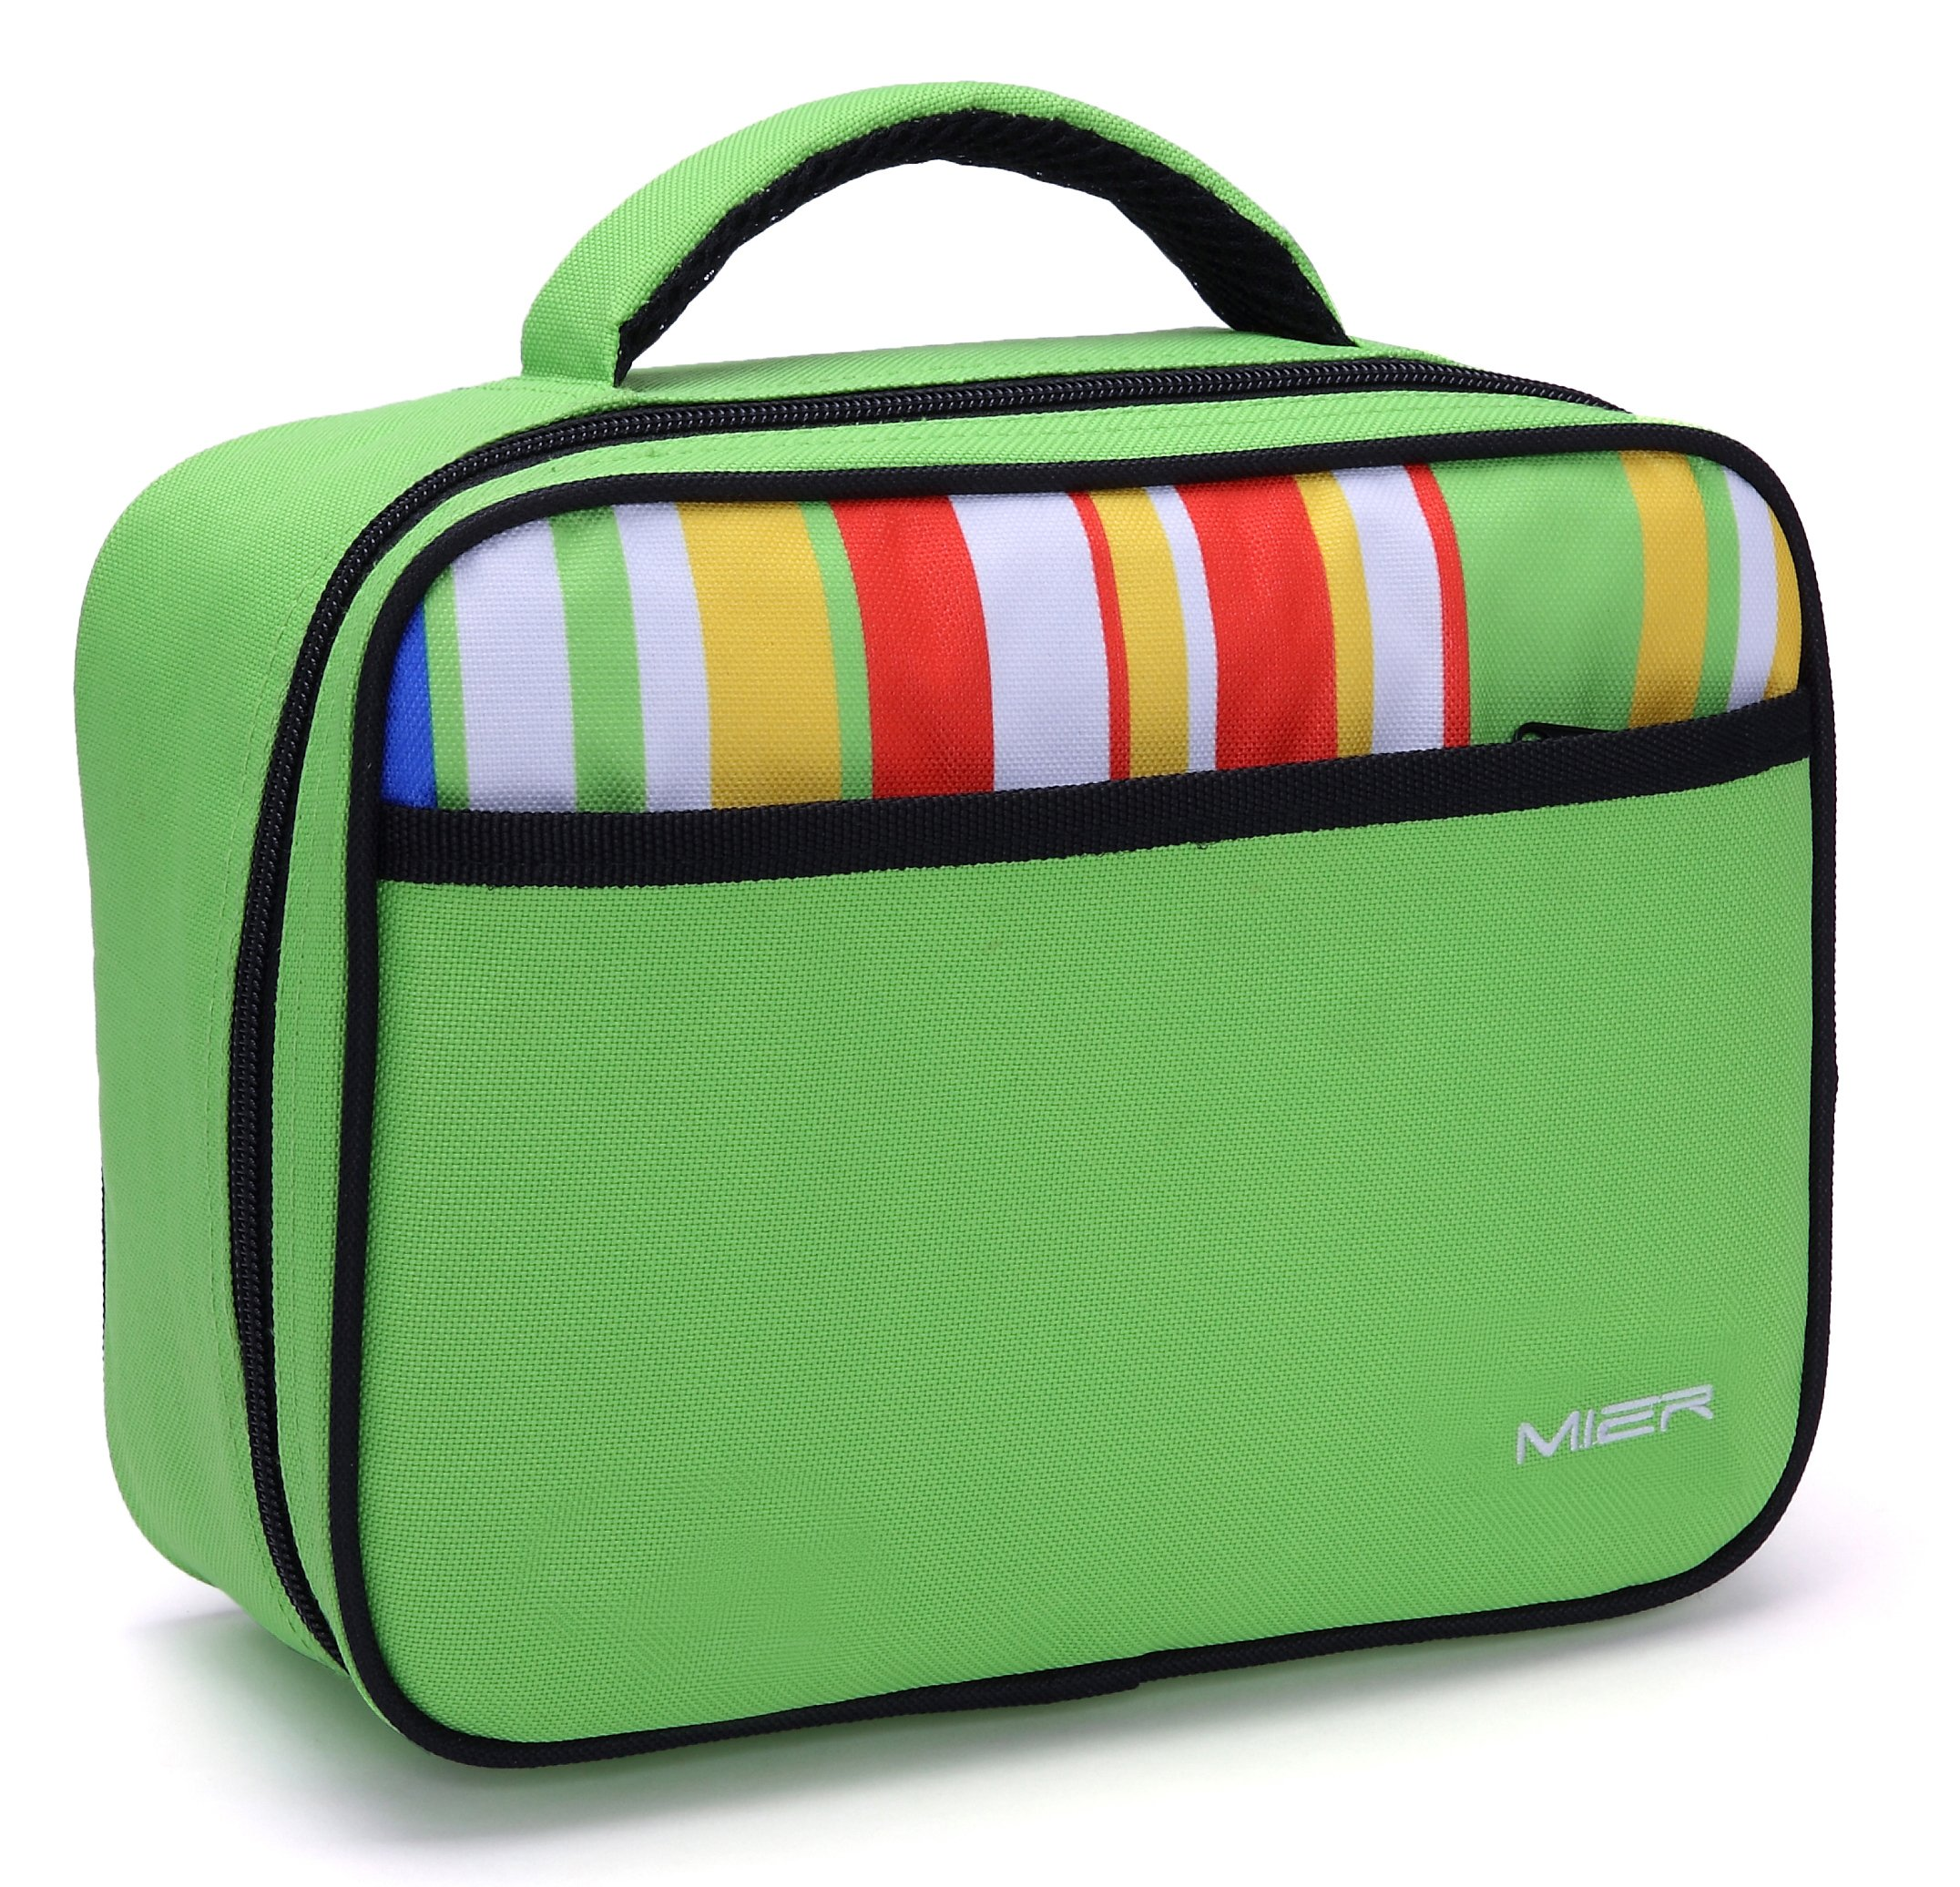 MIER Kids Lunch Box, Fit in Backpack, Green